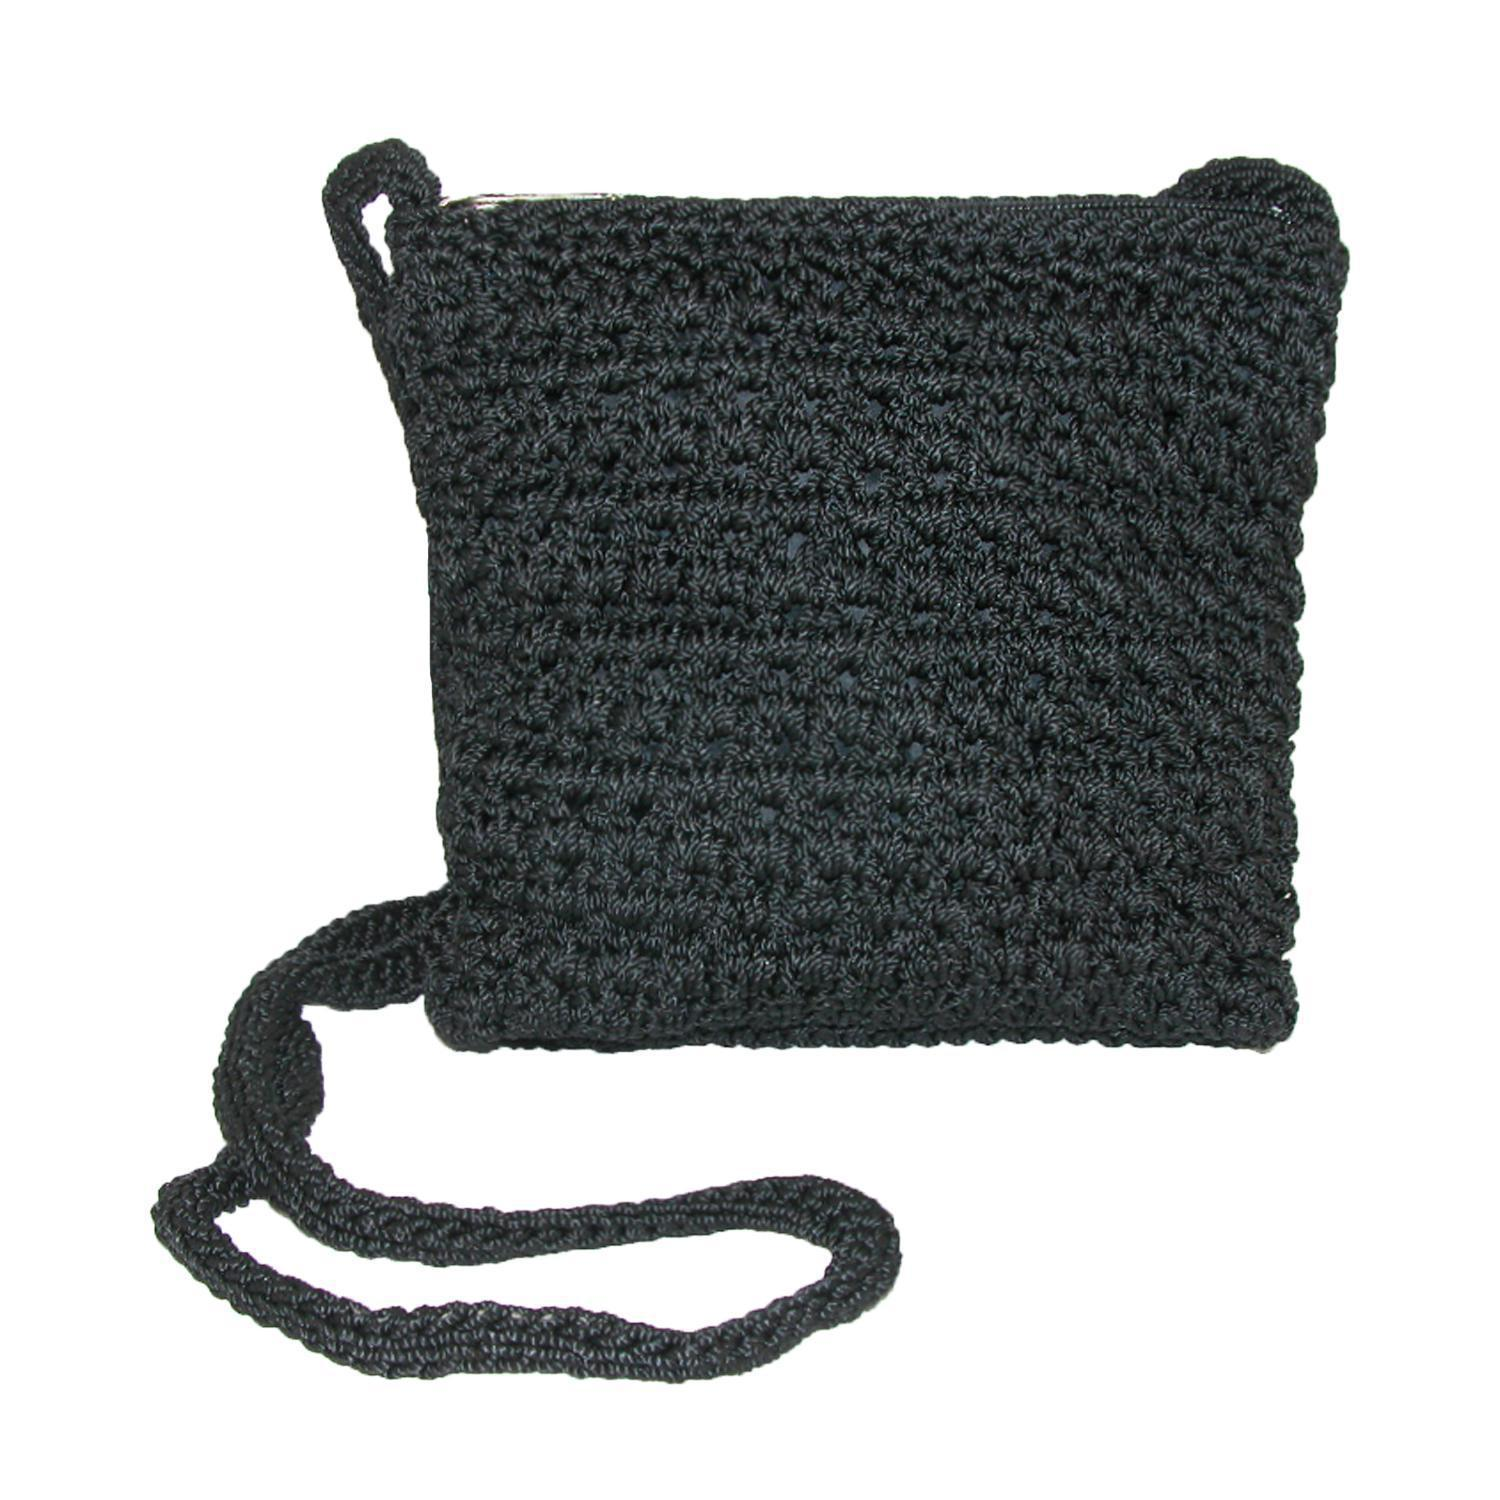 New-CTM-Women-039-s-Crochet-Crossbody-Handbag thumbnail 3